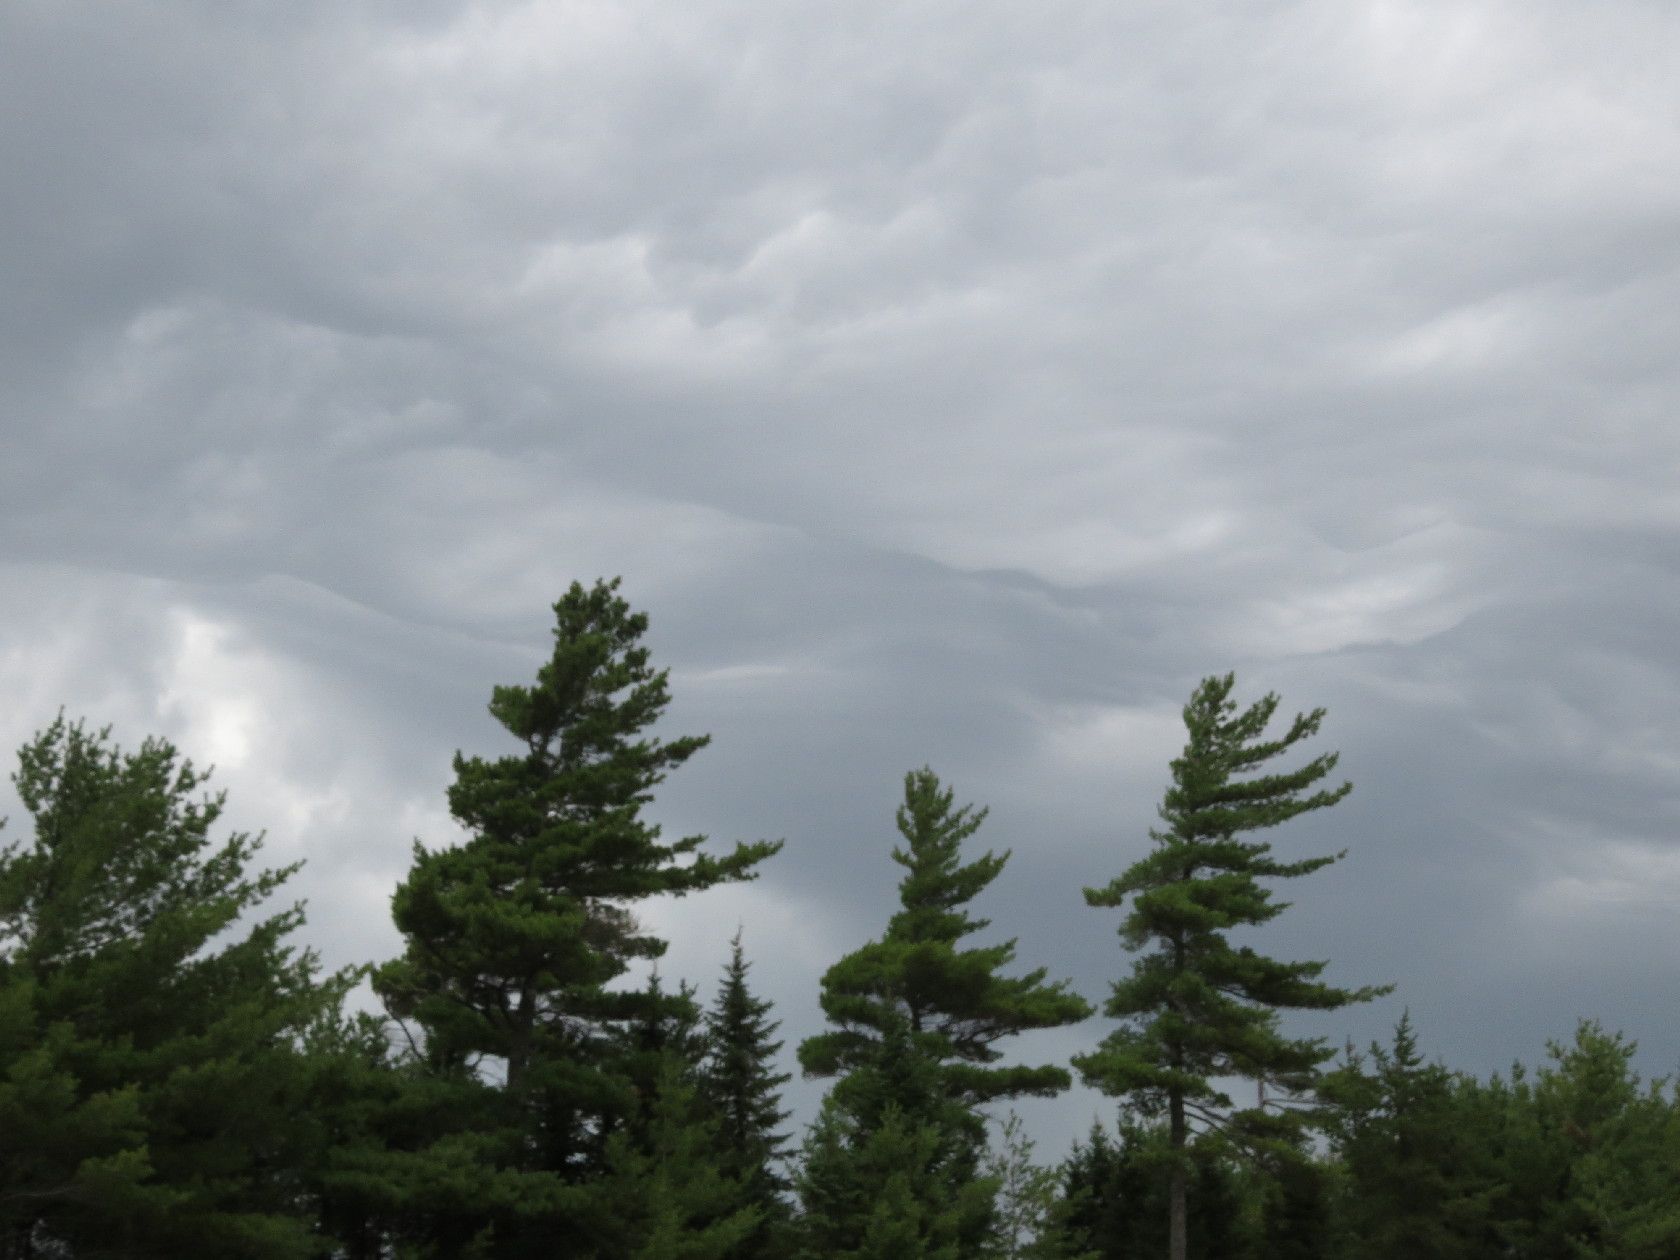 On way to Fundy. Storm ahead, clouds gathering